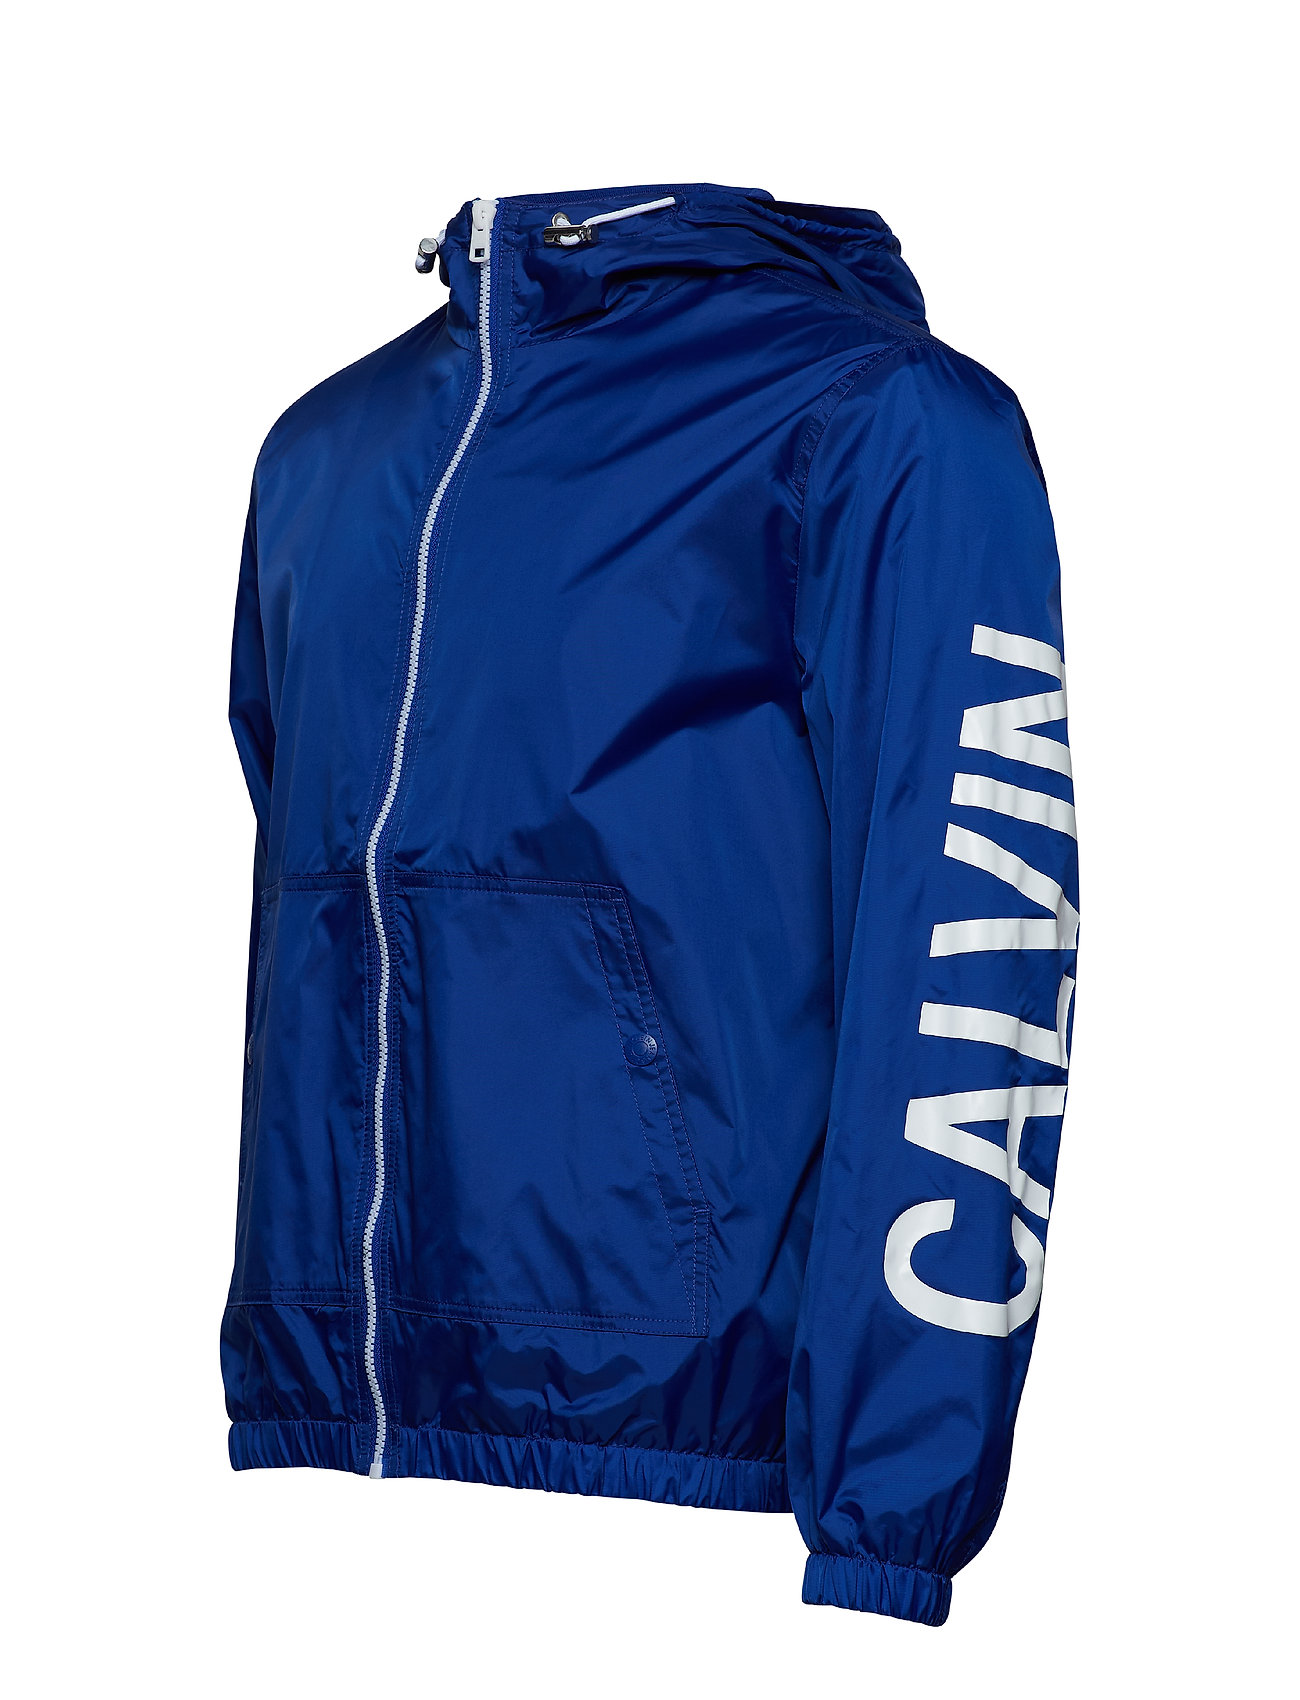 Zip Jacketsurf Jeans Up Klein WebCalvin The Nylon Hooded XOikuwZPT